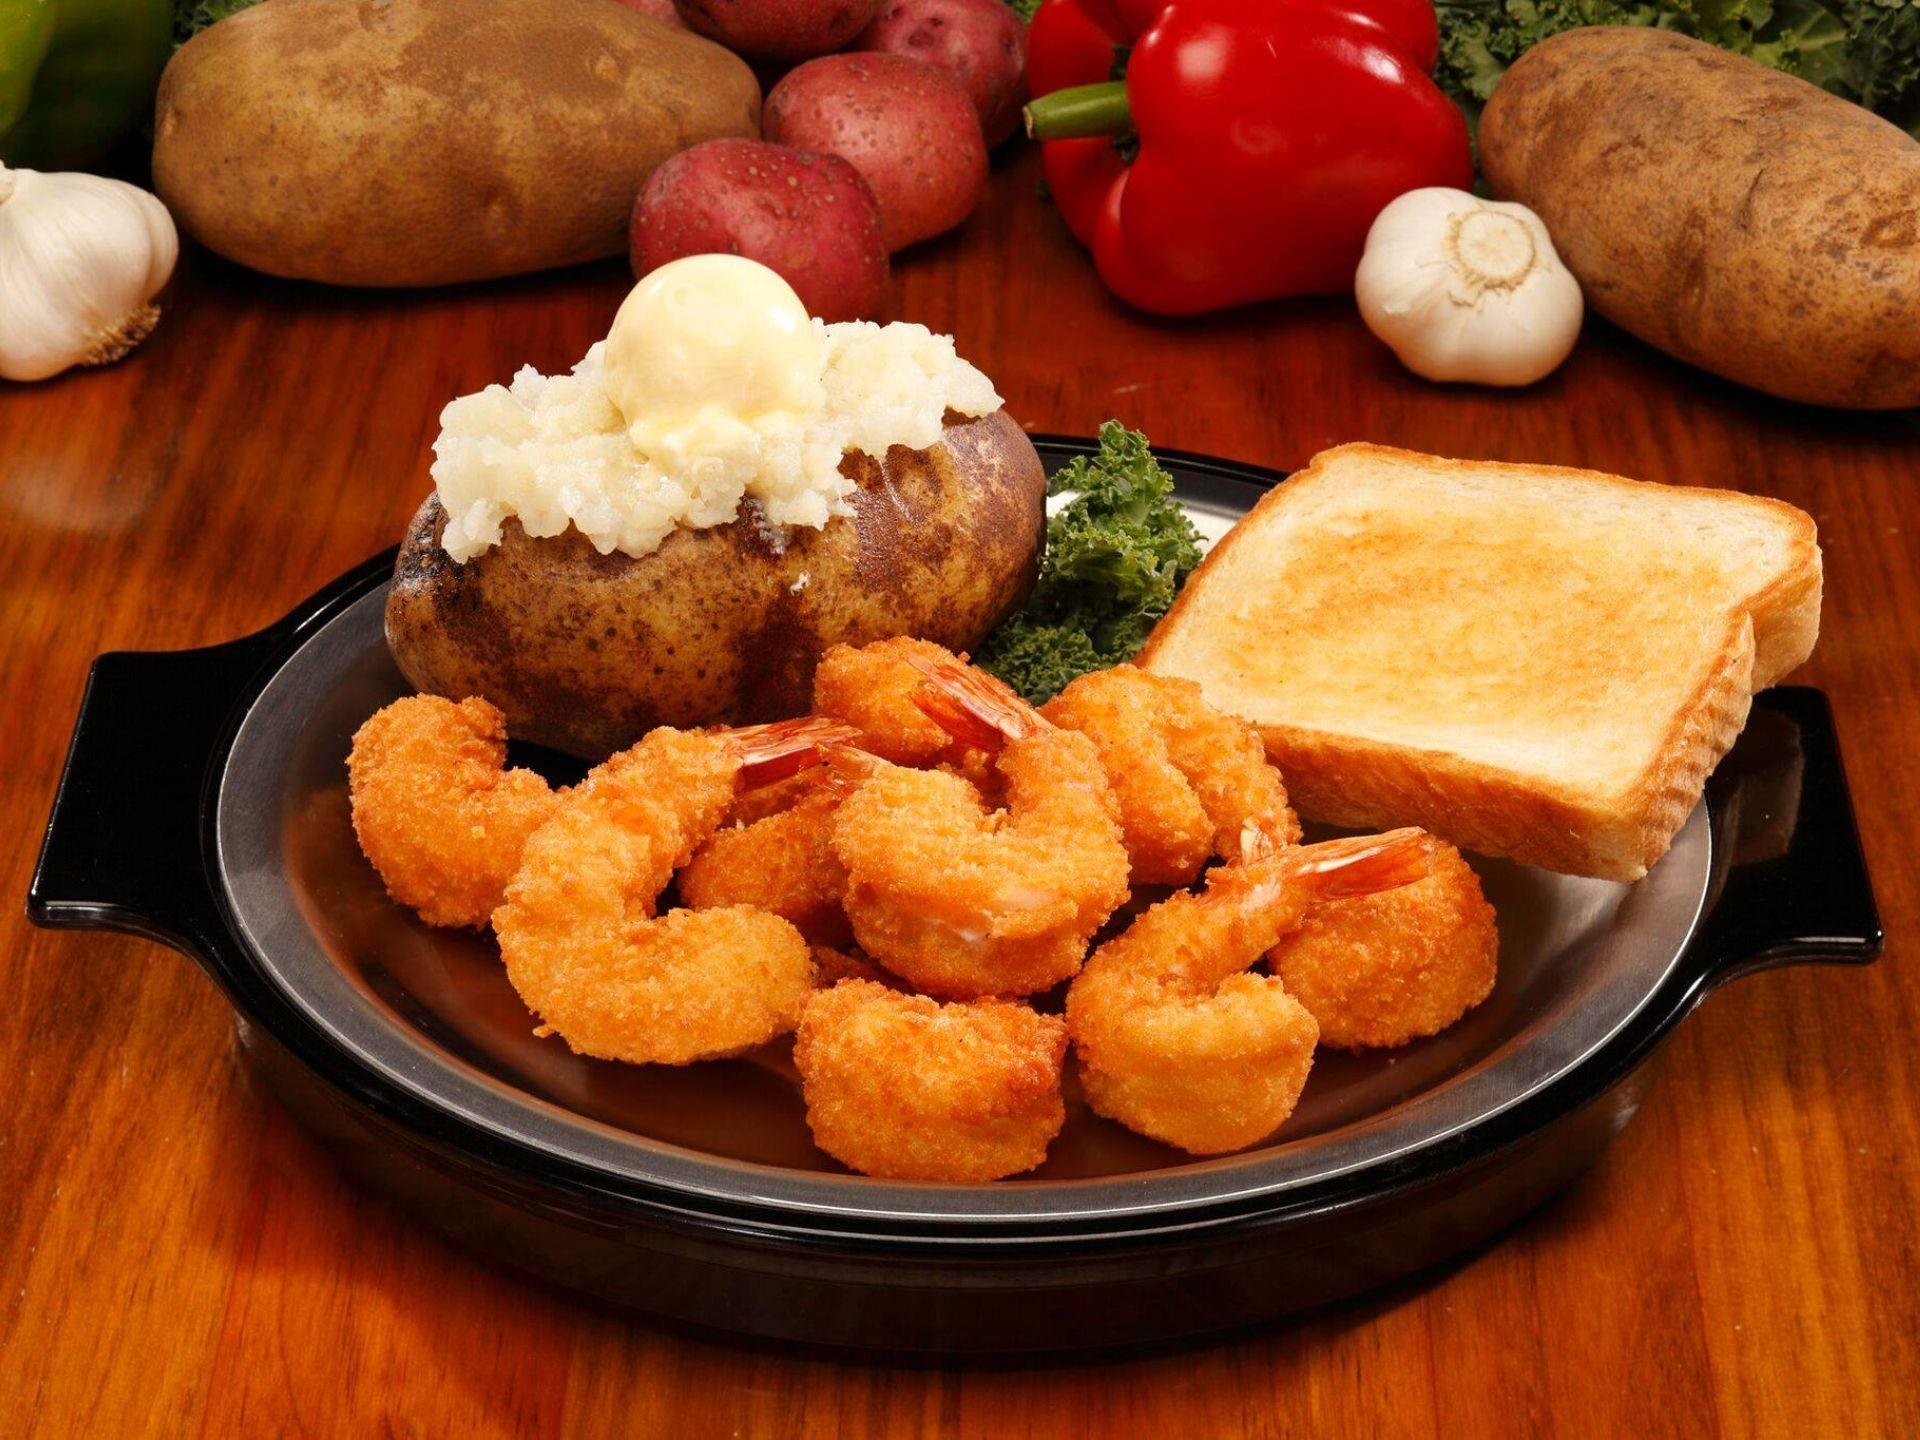 Breaded shrimp with baked potato and Texas toast